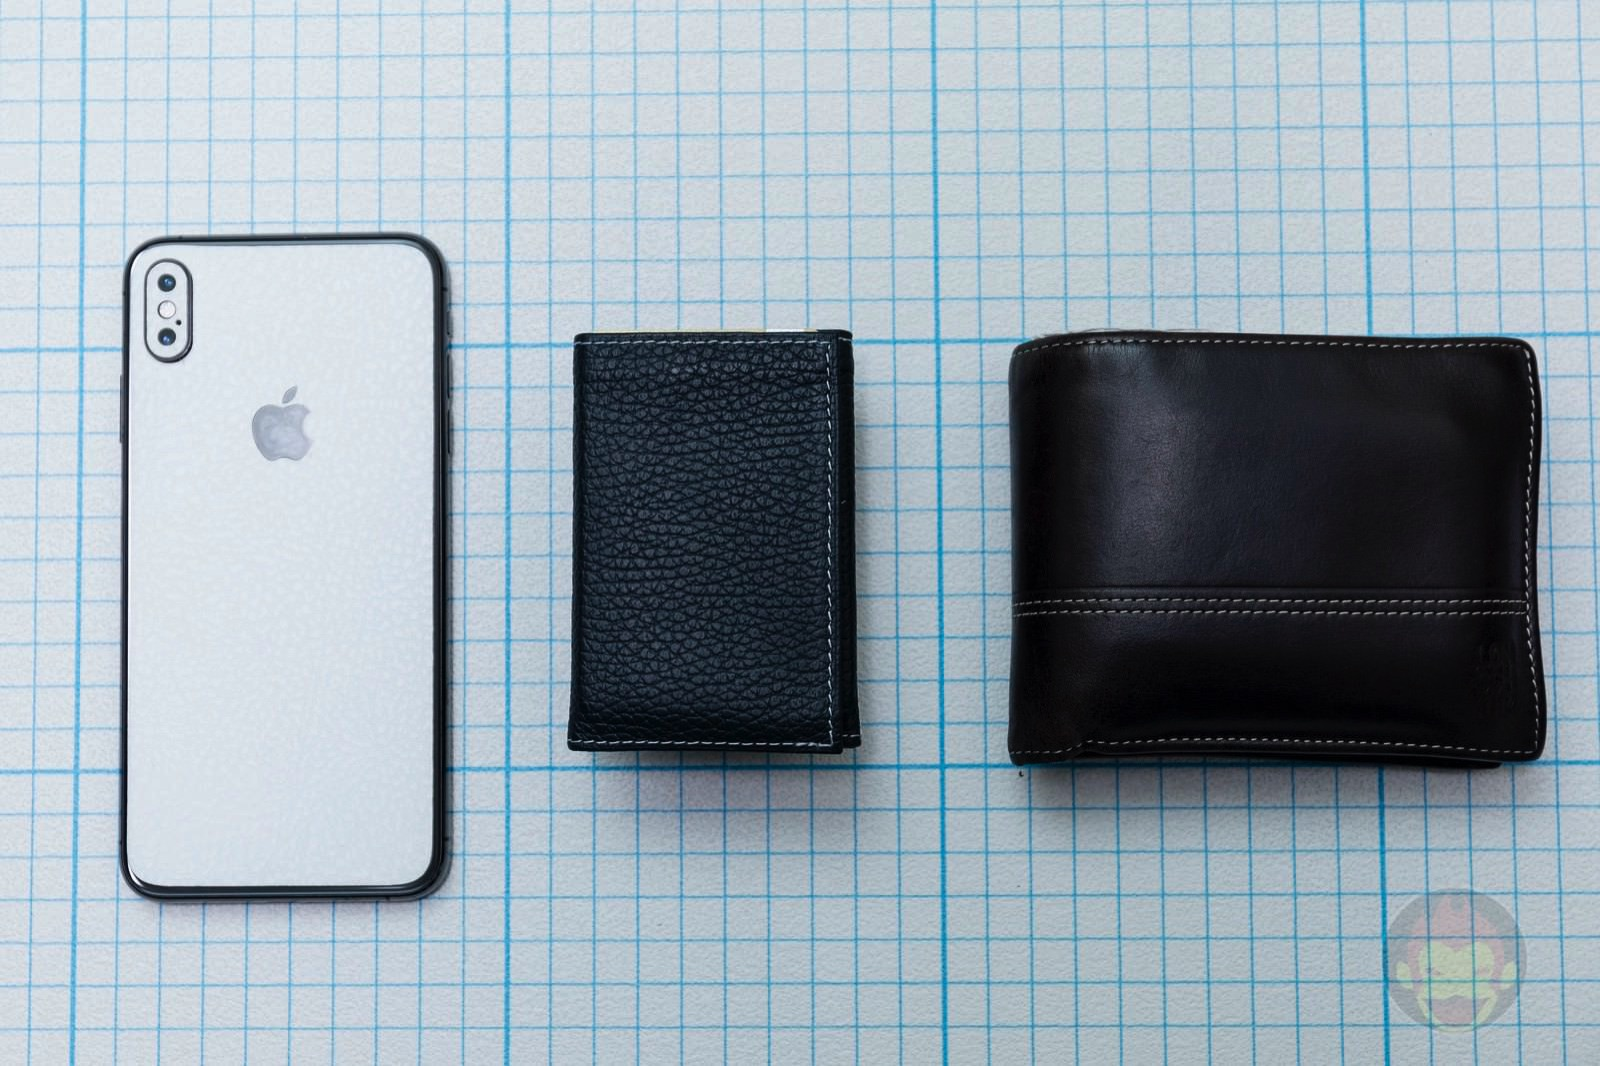 wallet and iphone